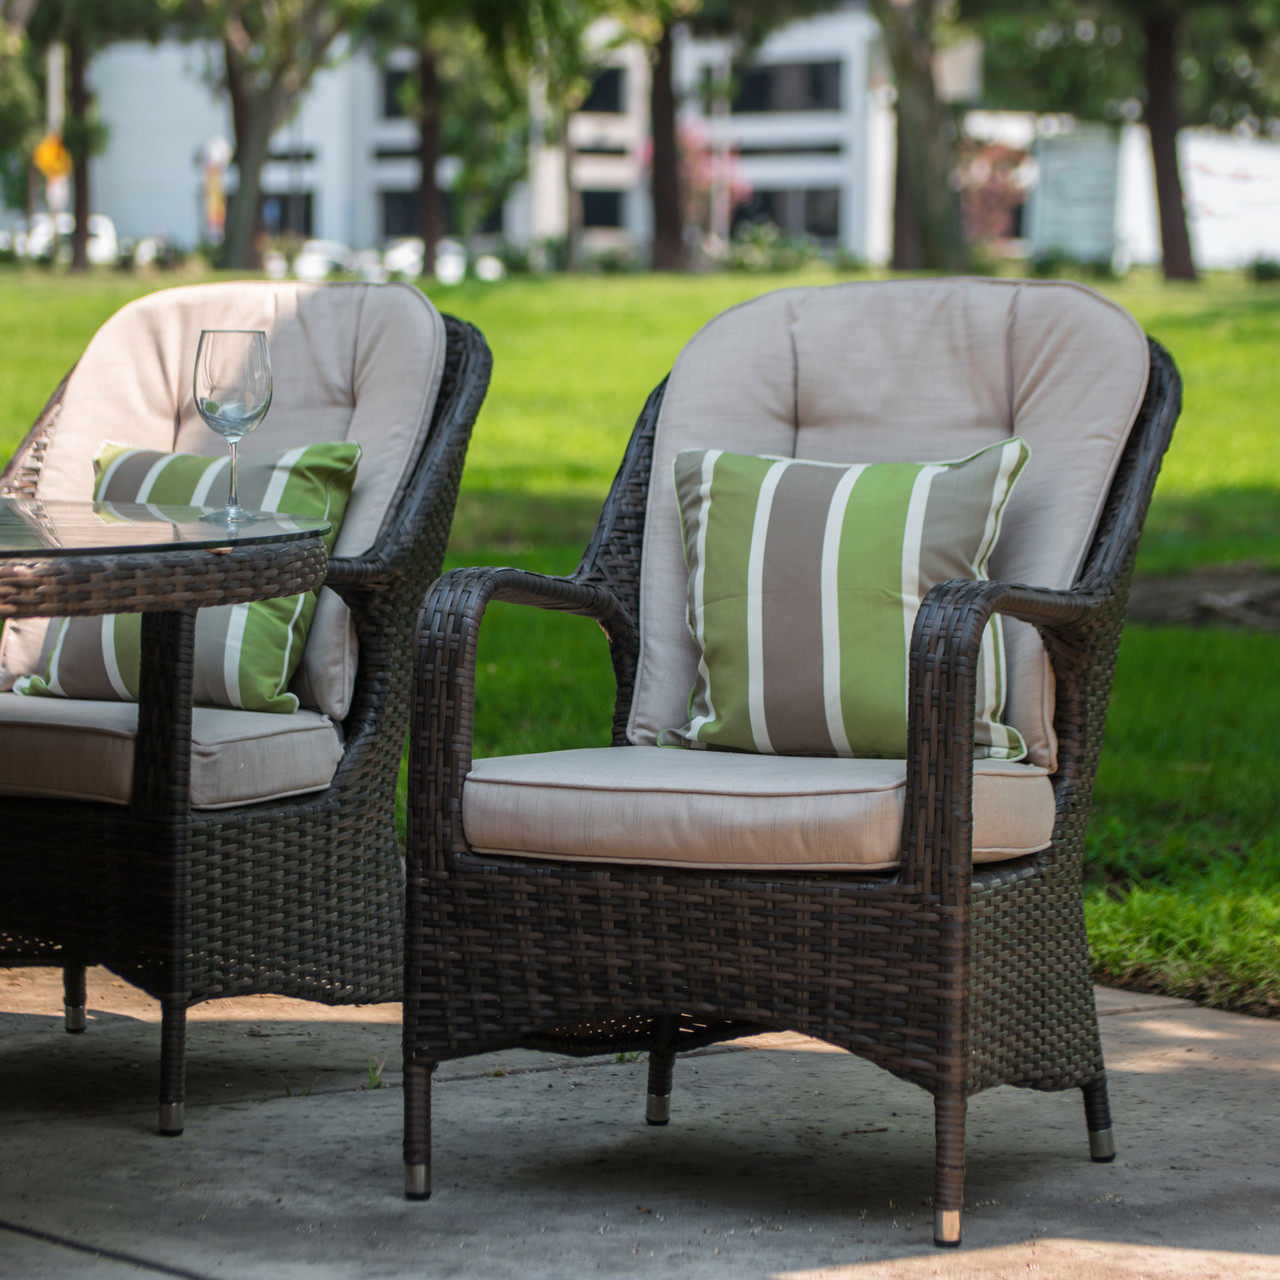 Outside Lounge Chairs Direct Wicker Liberatore Lounge Chair With Cushions 8 Pcs